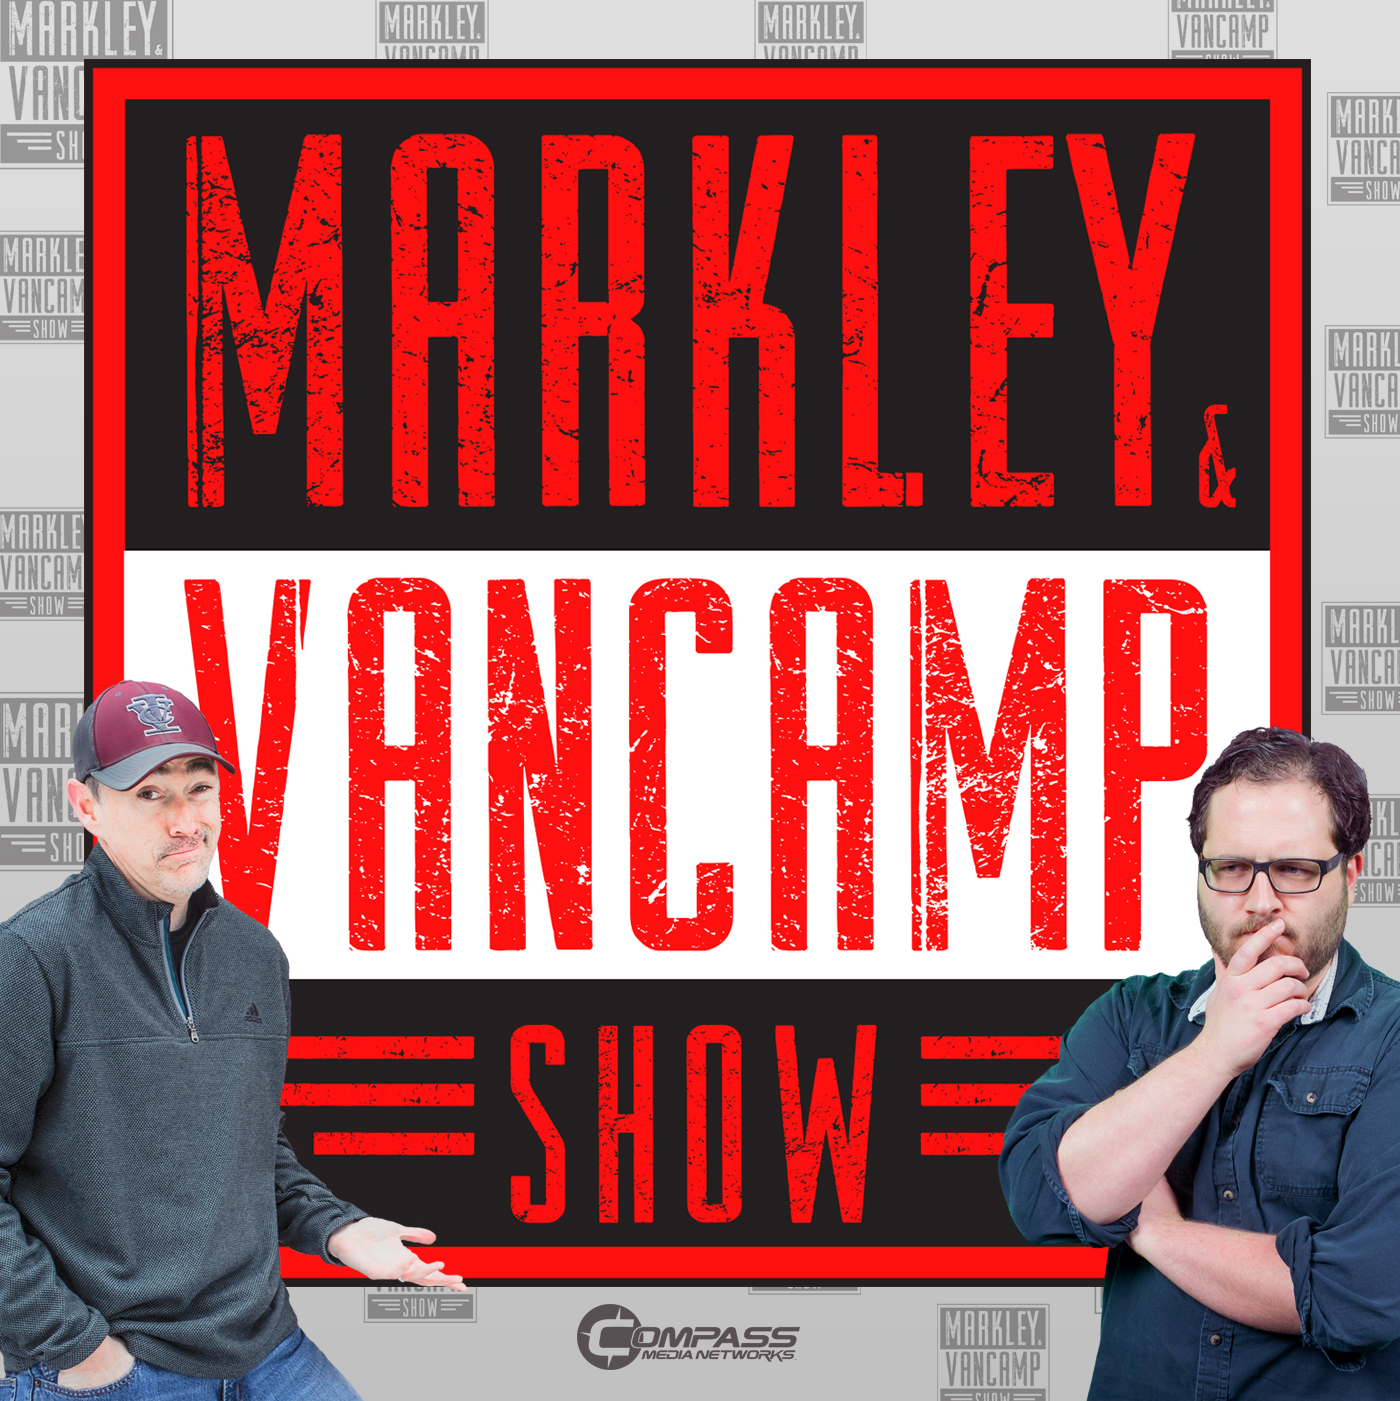 Markley and van Camp